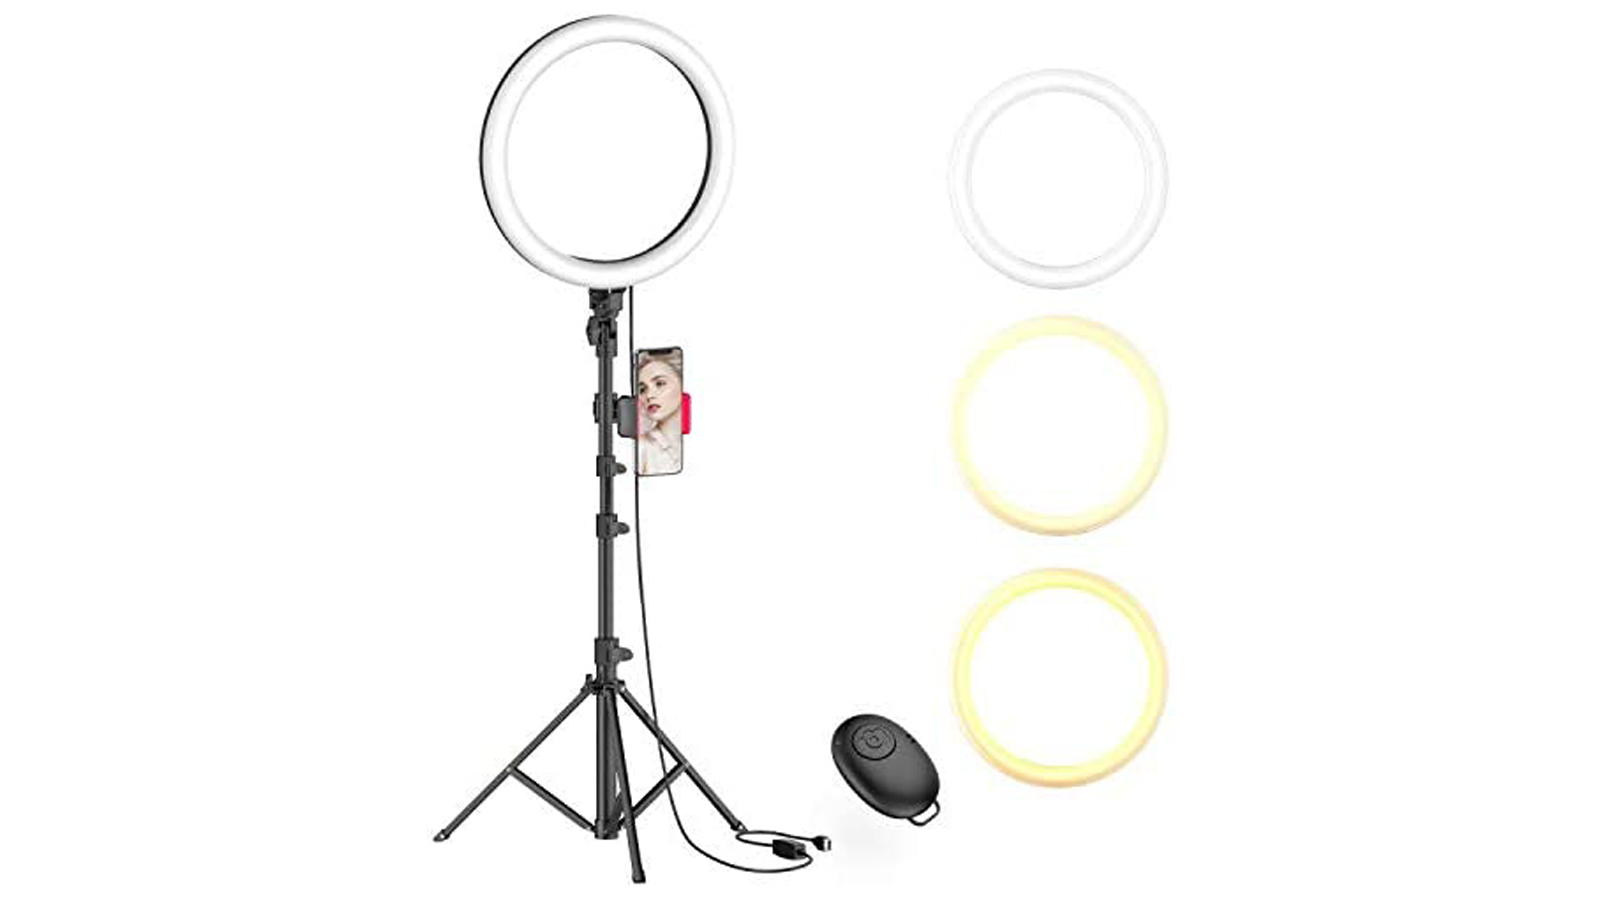 This Selfie Ring Light is a Must-Have for Smartphone Photos and Videos